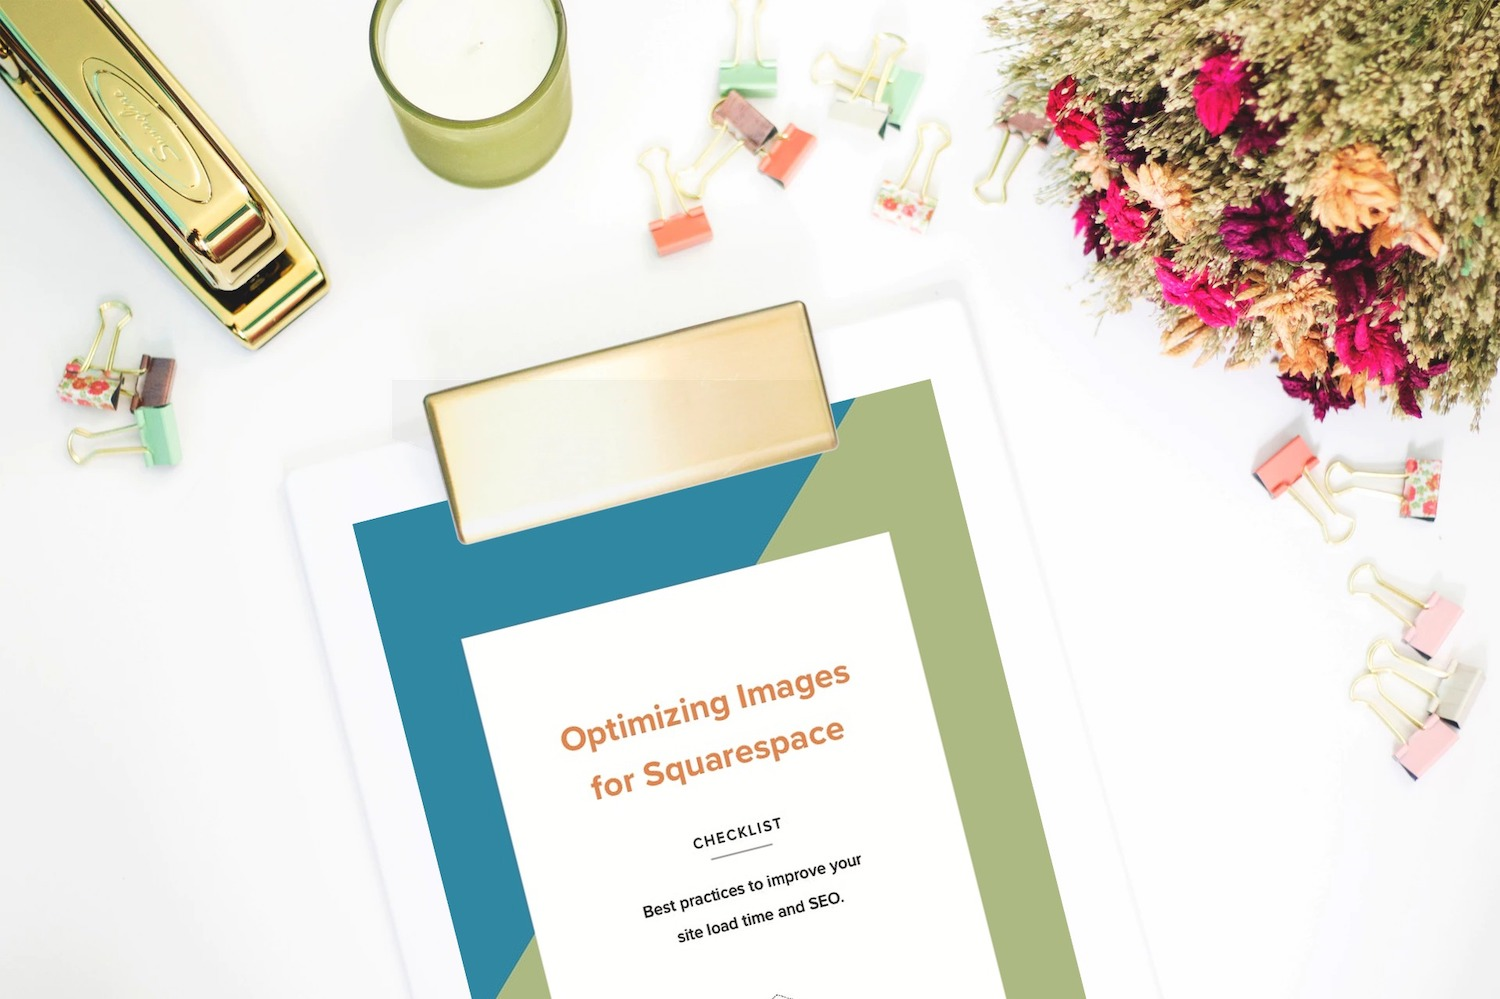 Optimizing Images for Squarespace Checklist